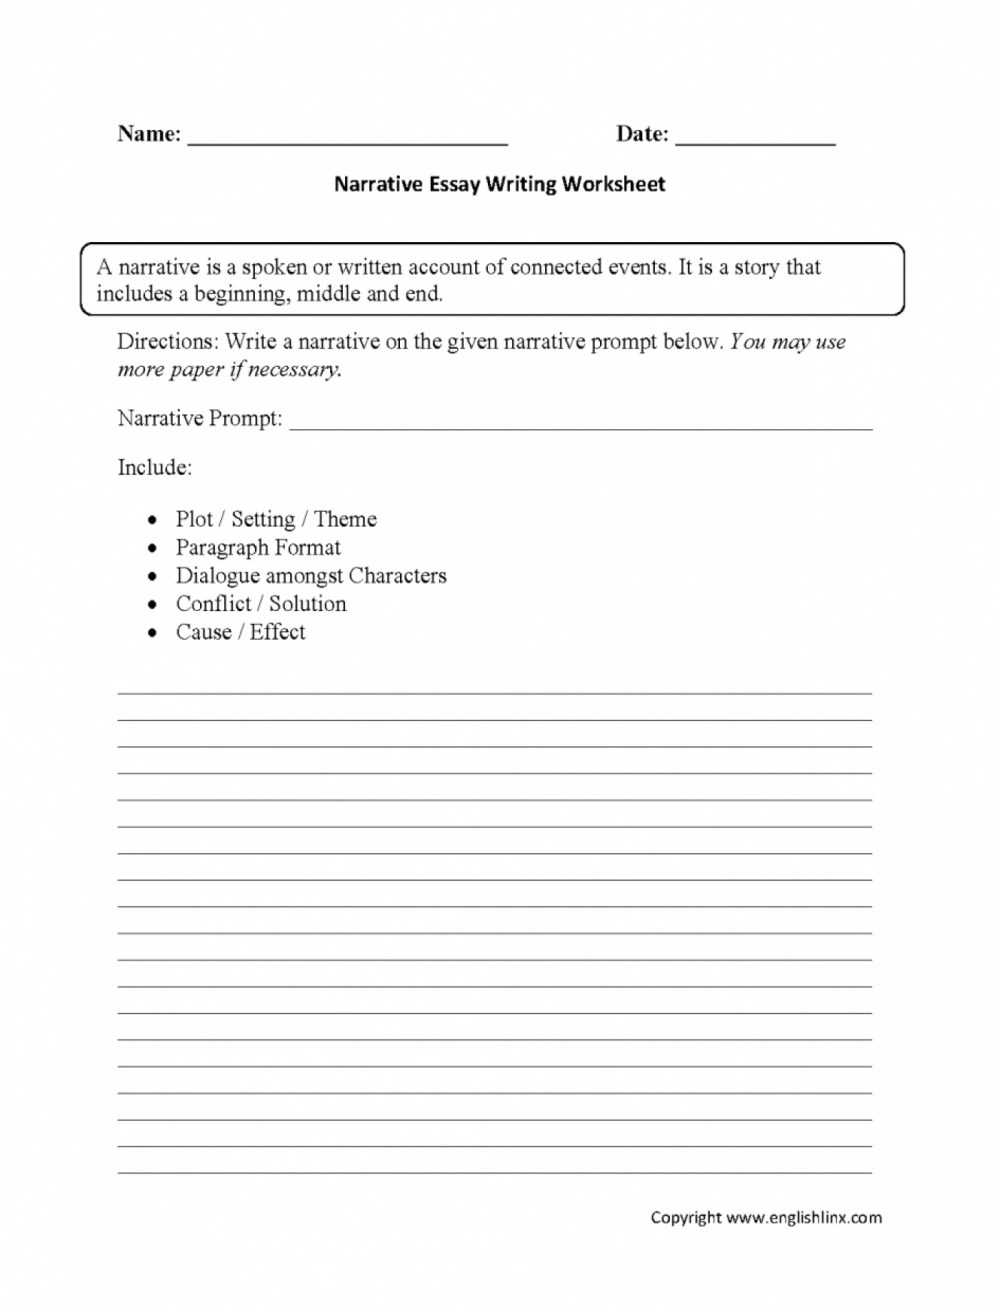 medium resolution of Third Person Narrative Sample Worksheets   Printable Worksheets and  Activities for Teachers